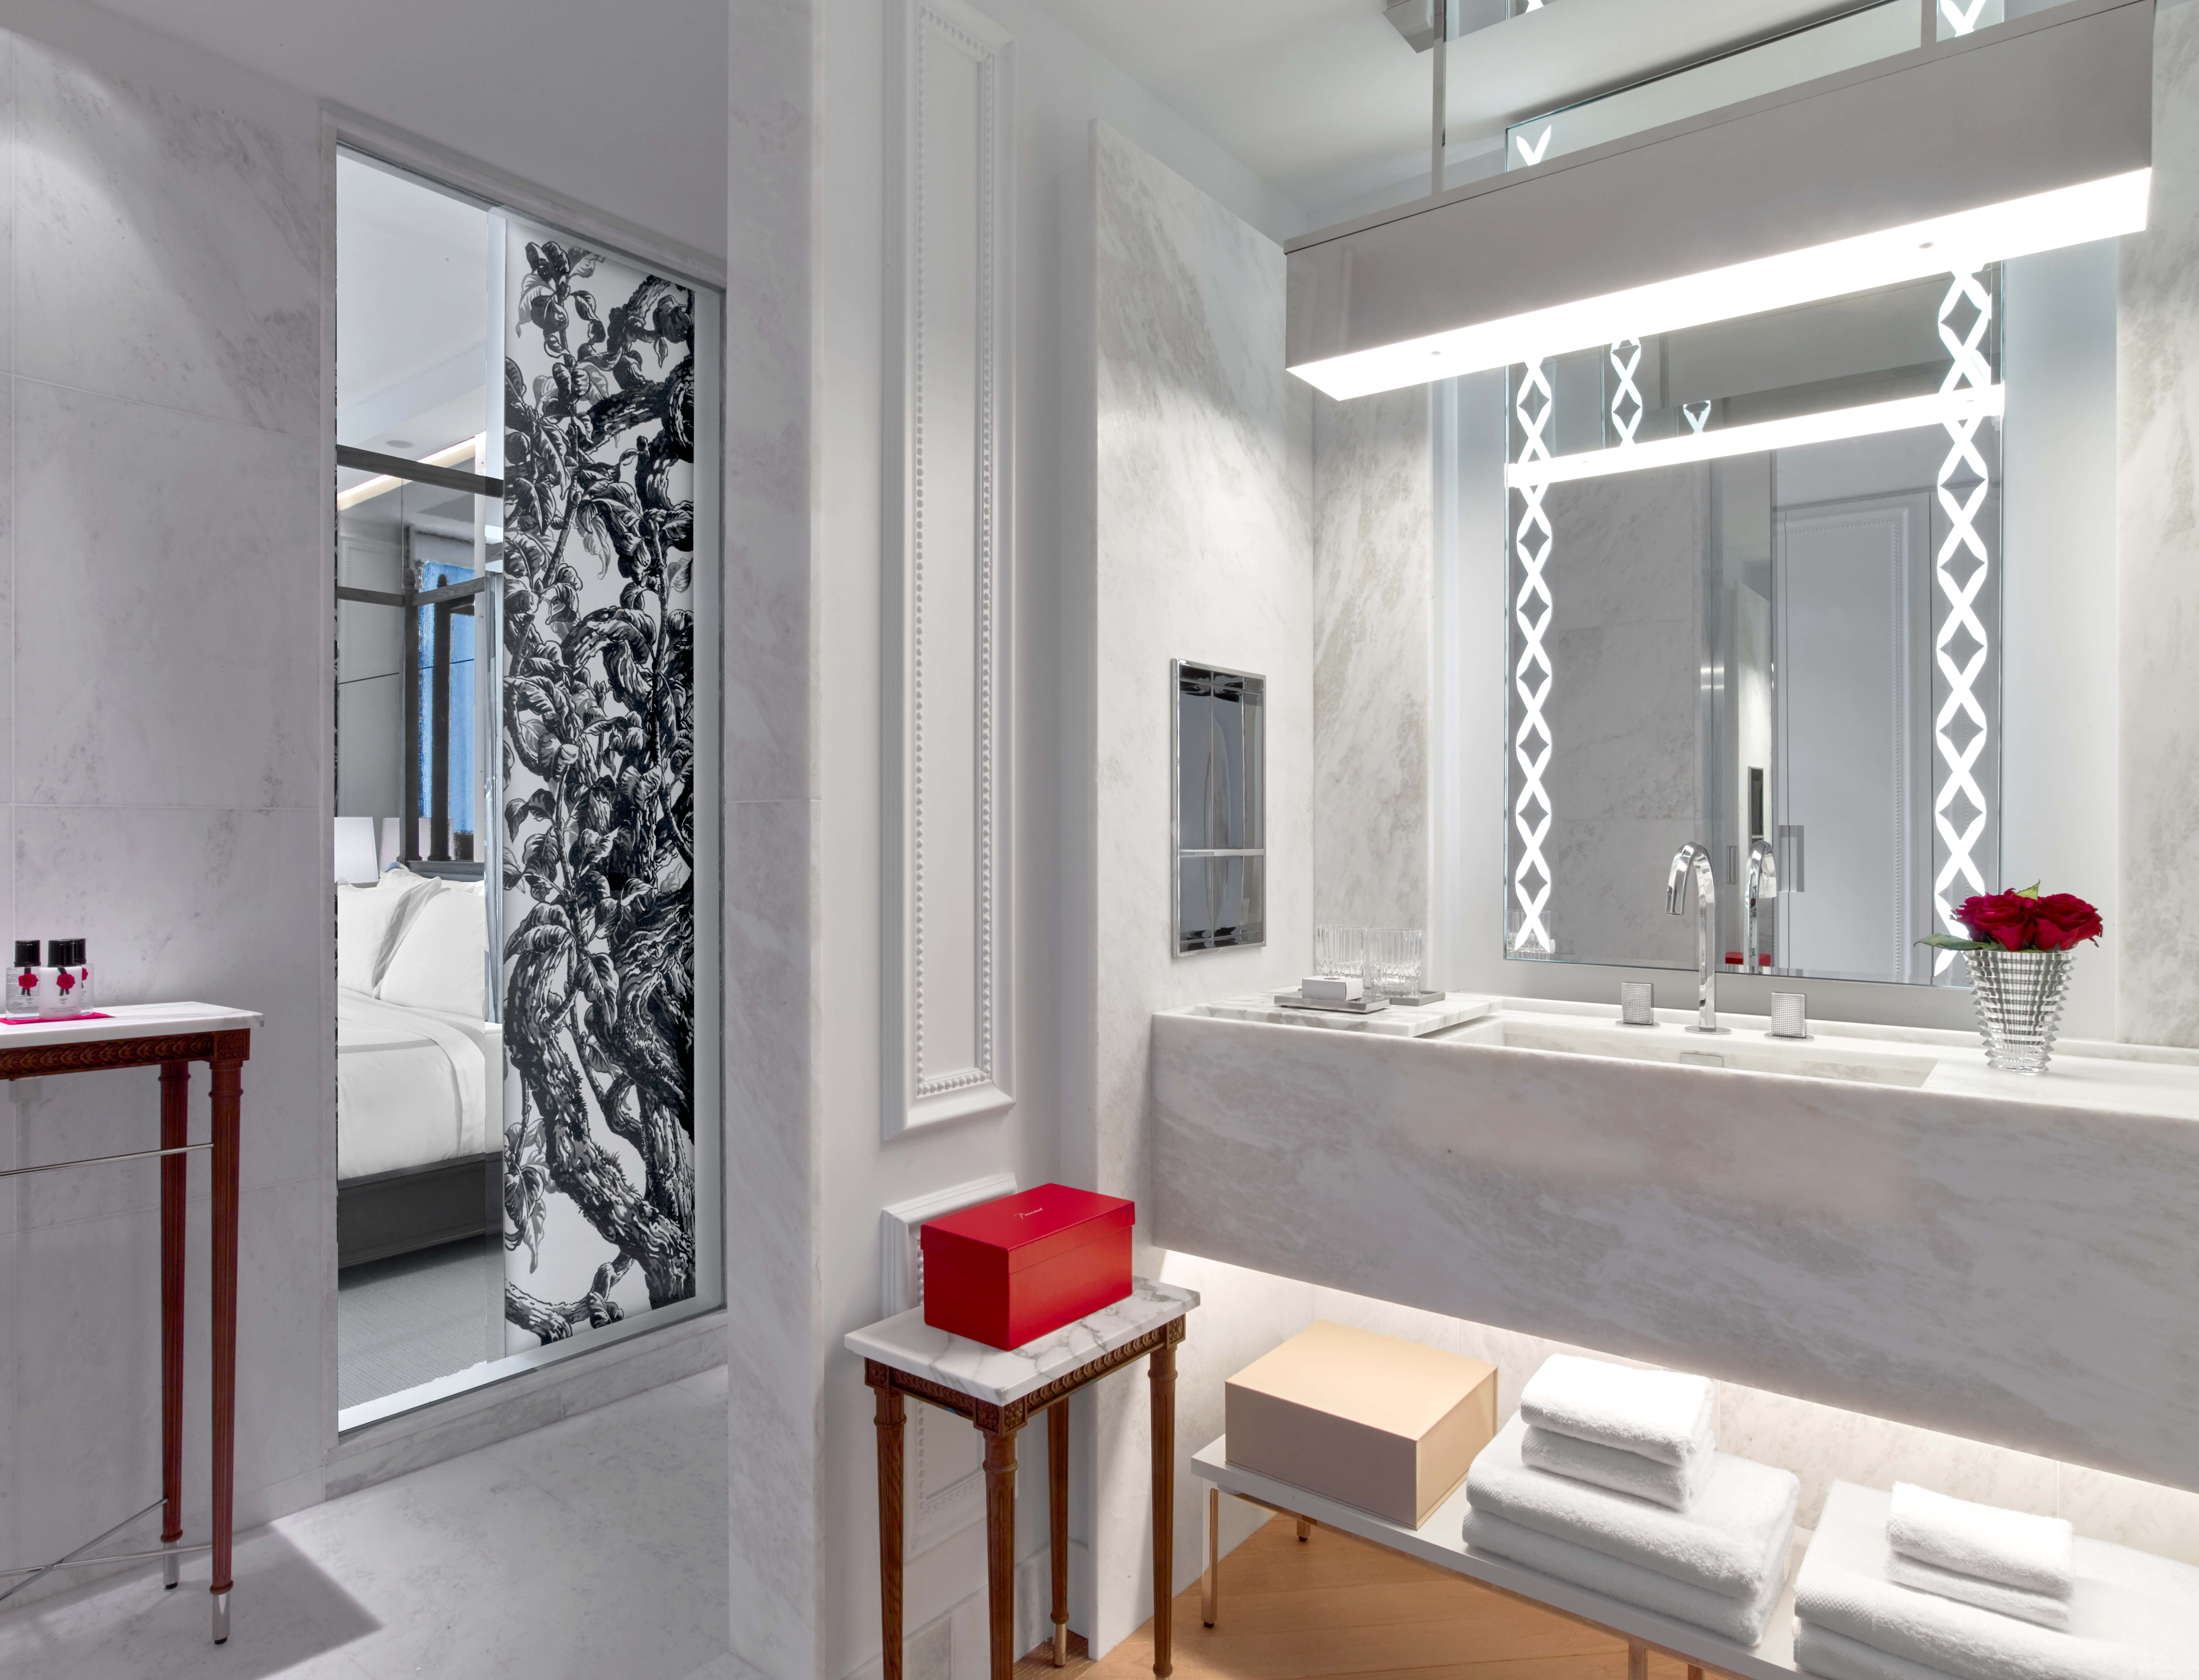 baccarat hotel new york Bathroom